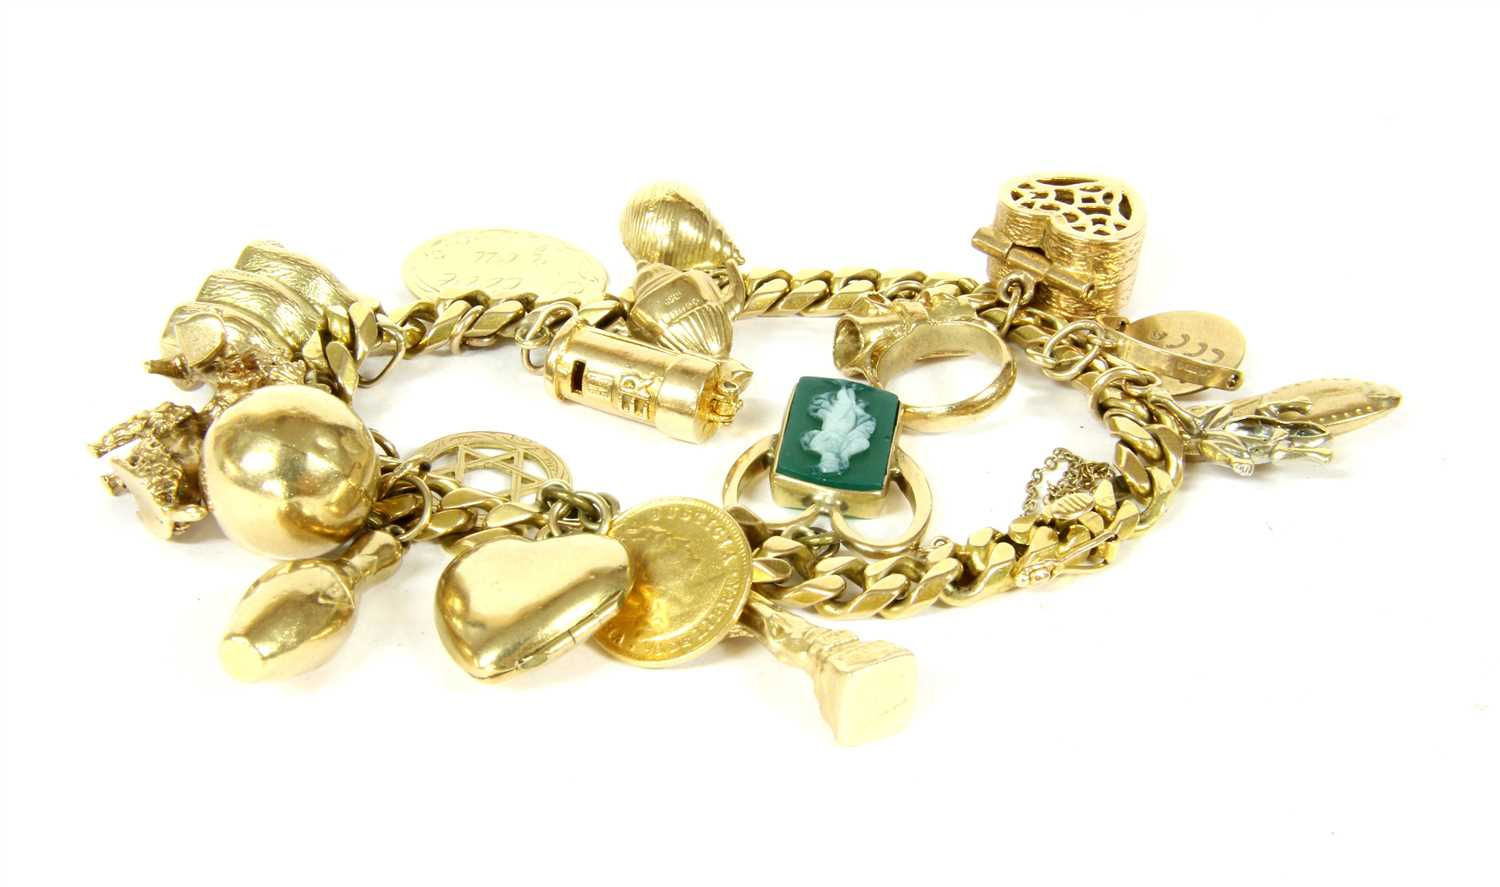 Lot 1019-A Continental gold filed curb bracelet